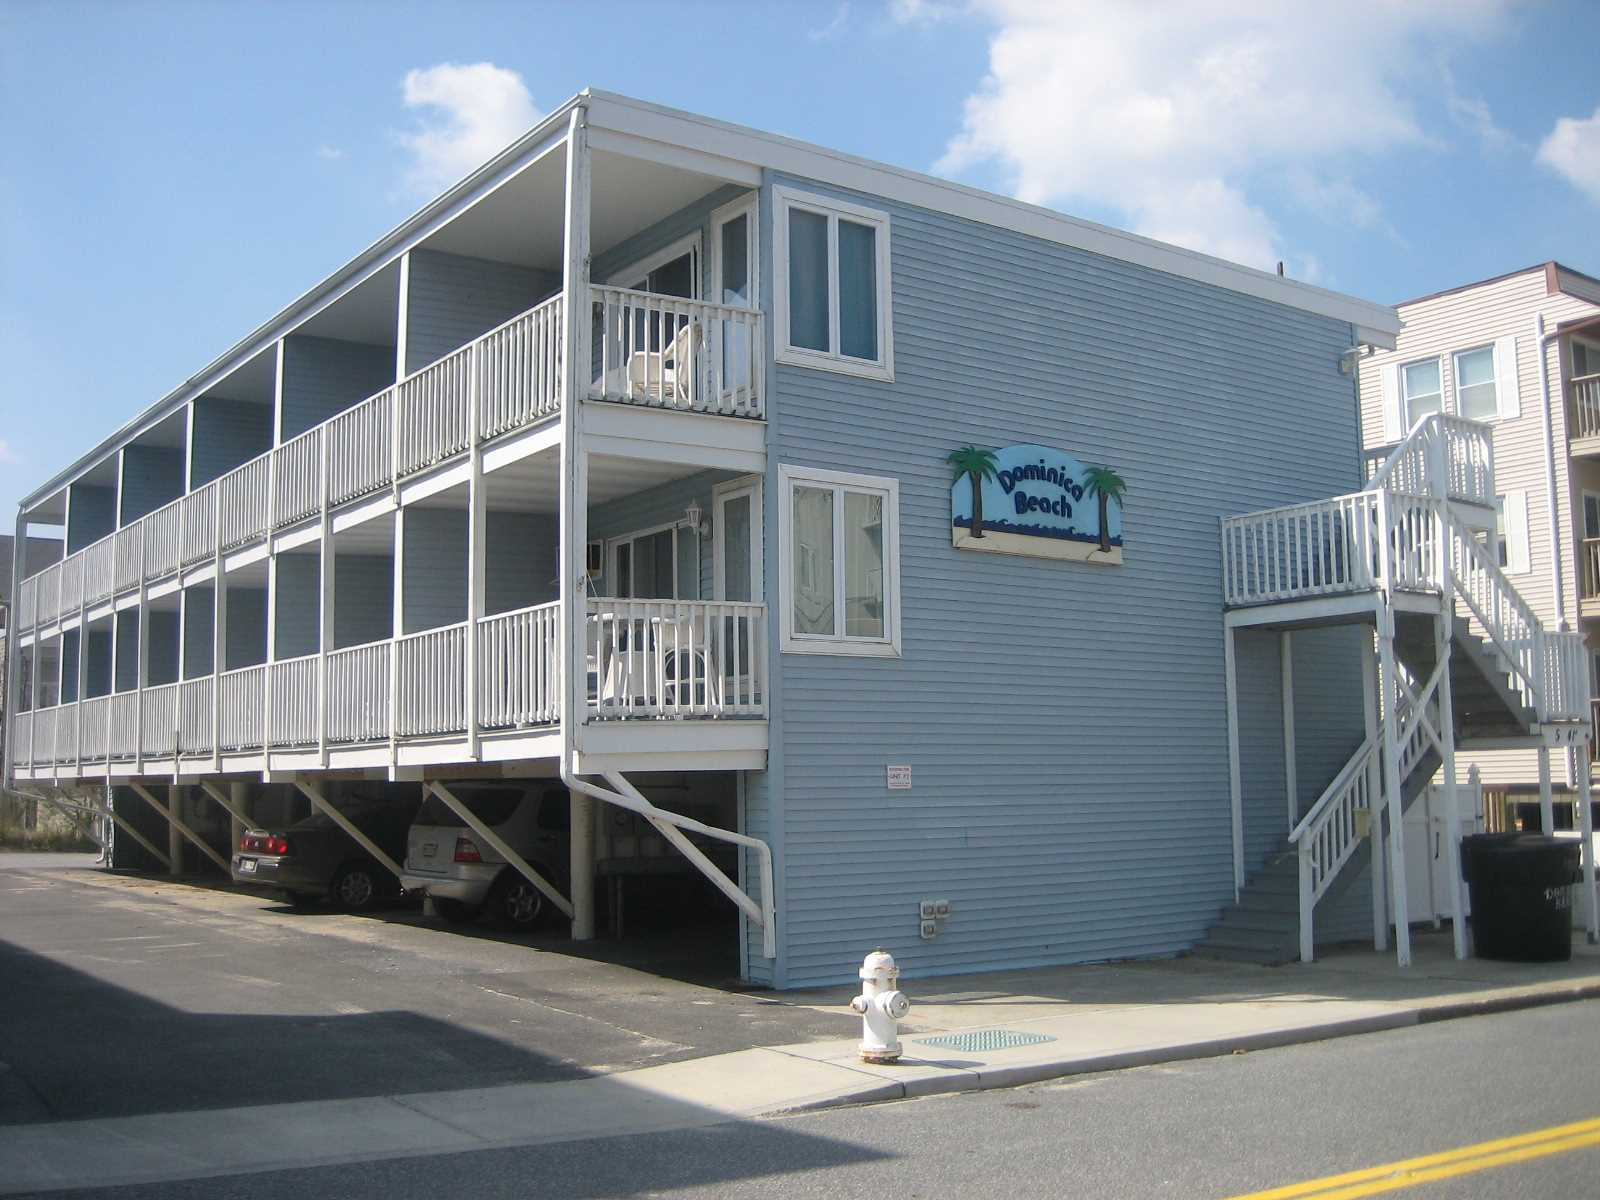 Dominic Beach Building